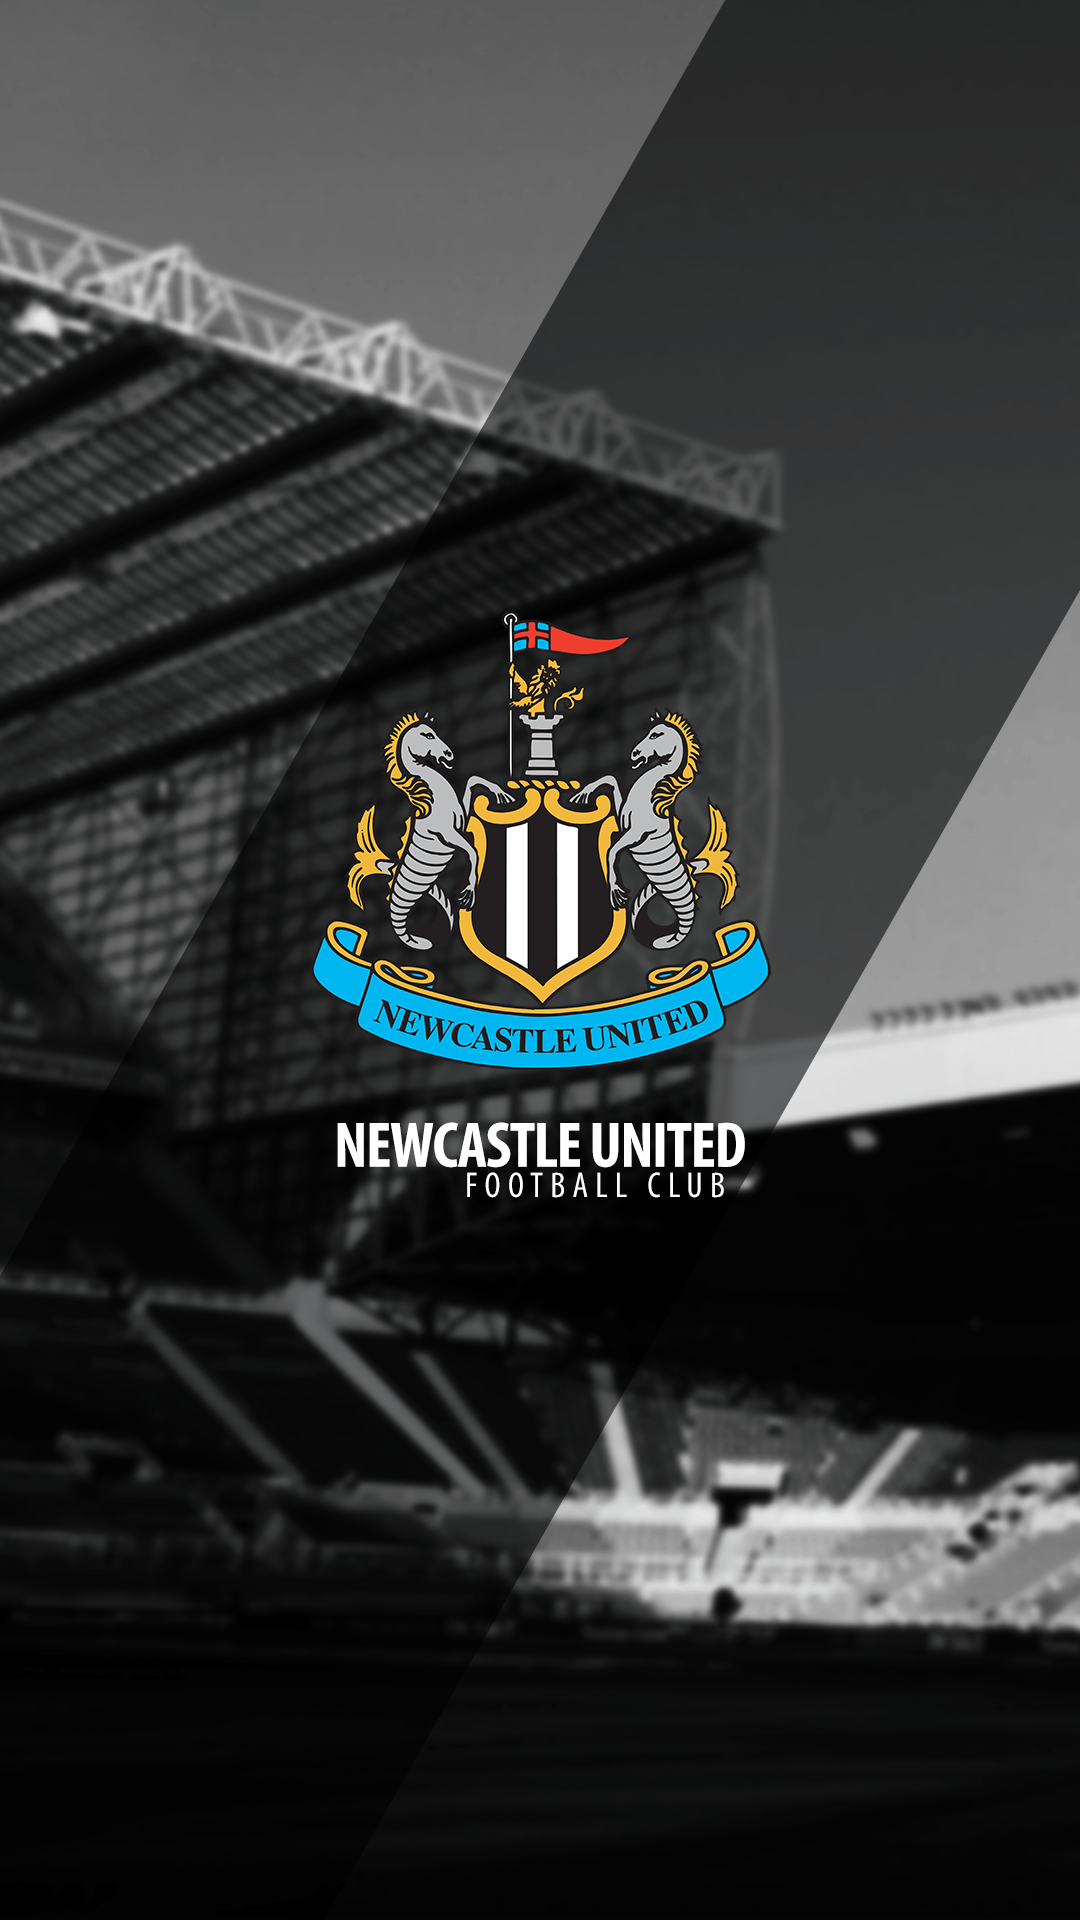 Wwe 3d Live Wallpaper Download Newcastle United Mobile Wallpaper Gallery